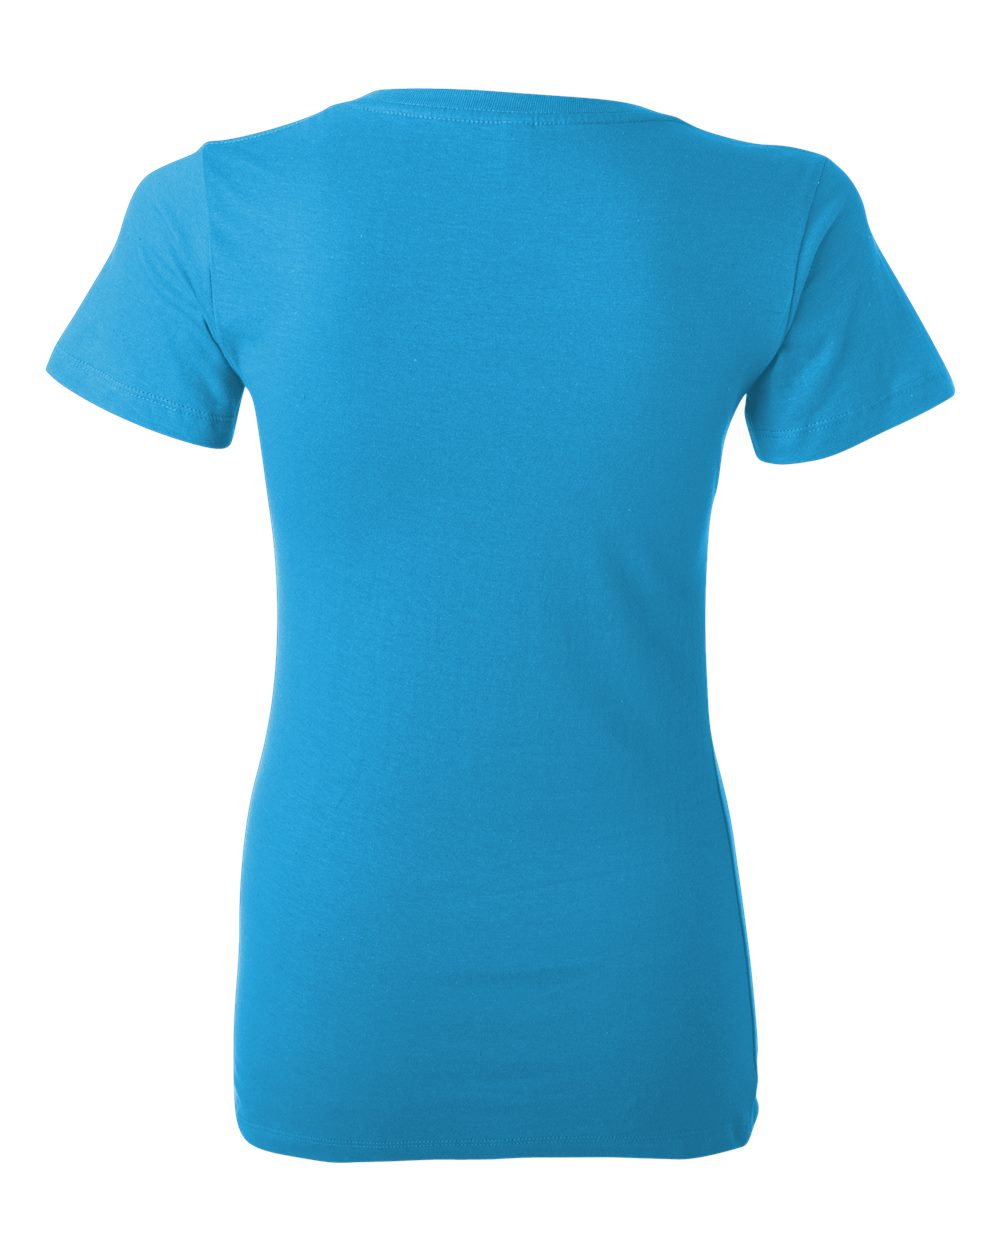 Bella-Canvas-Women-039-s-Jersey-Short-Sleeve-Deep-V-Neck-T-Shirt-B6035-S-2XL thumbnail 19